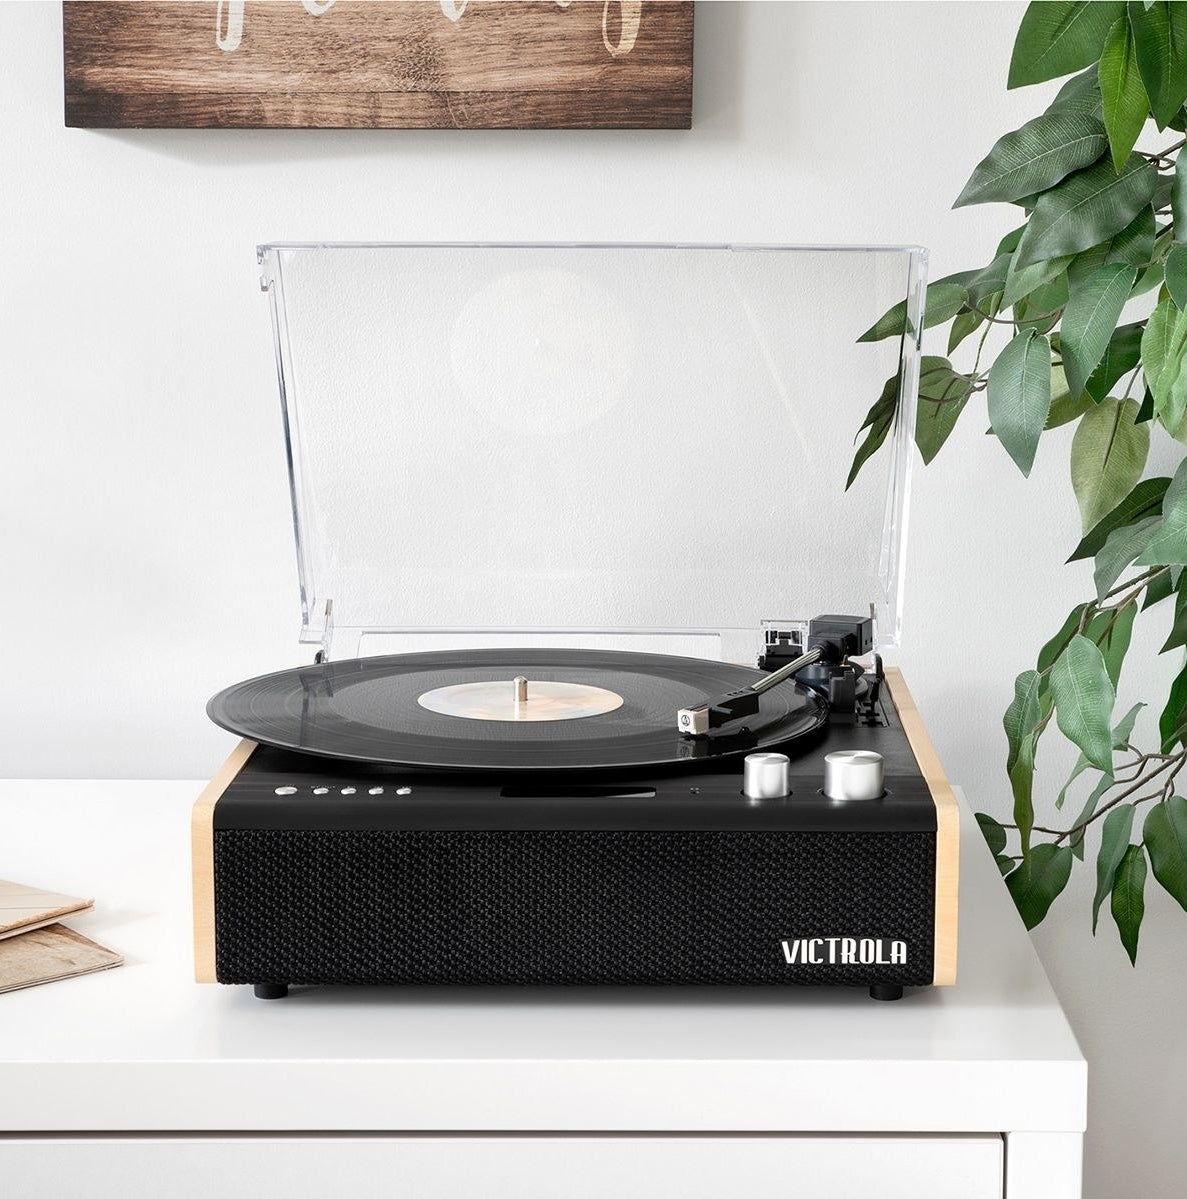 the Victrola eastwood record player open, with a record in it